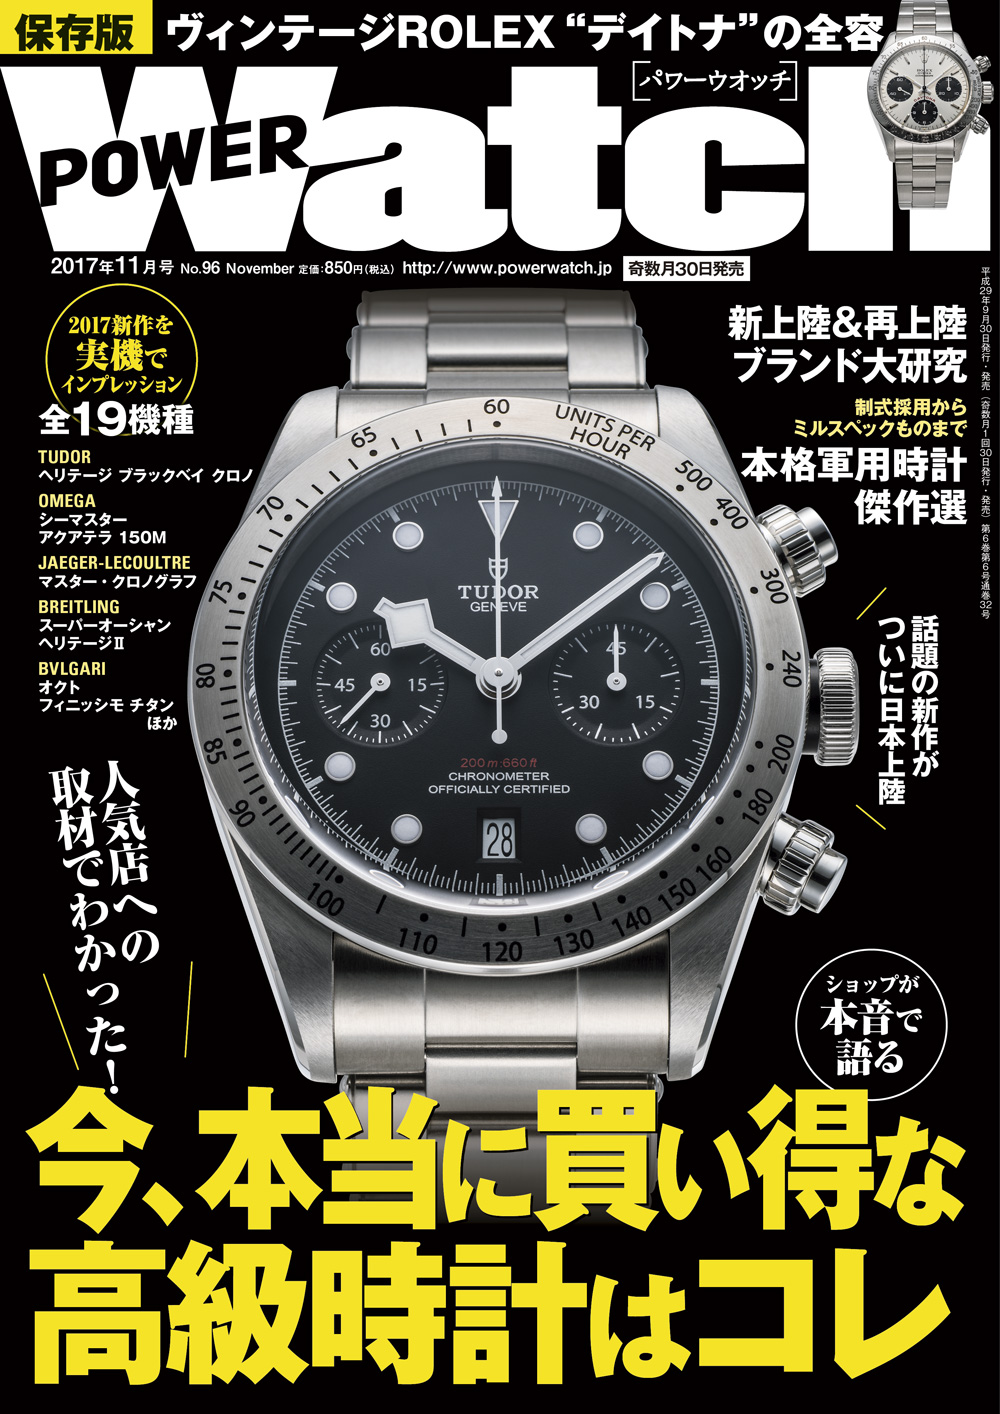 C's-Factory|電子書籍|POWER Watch No.96